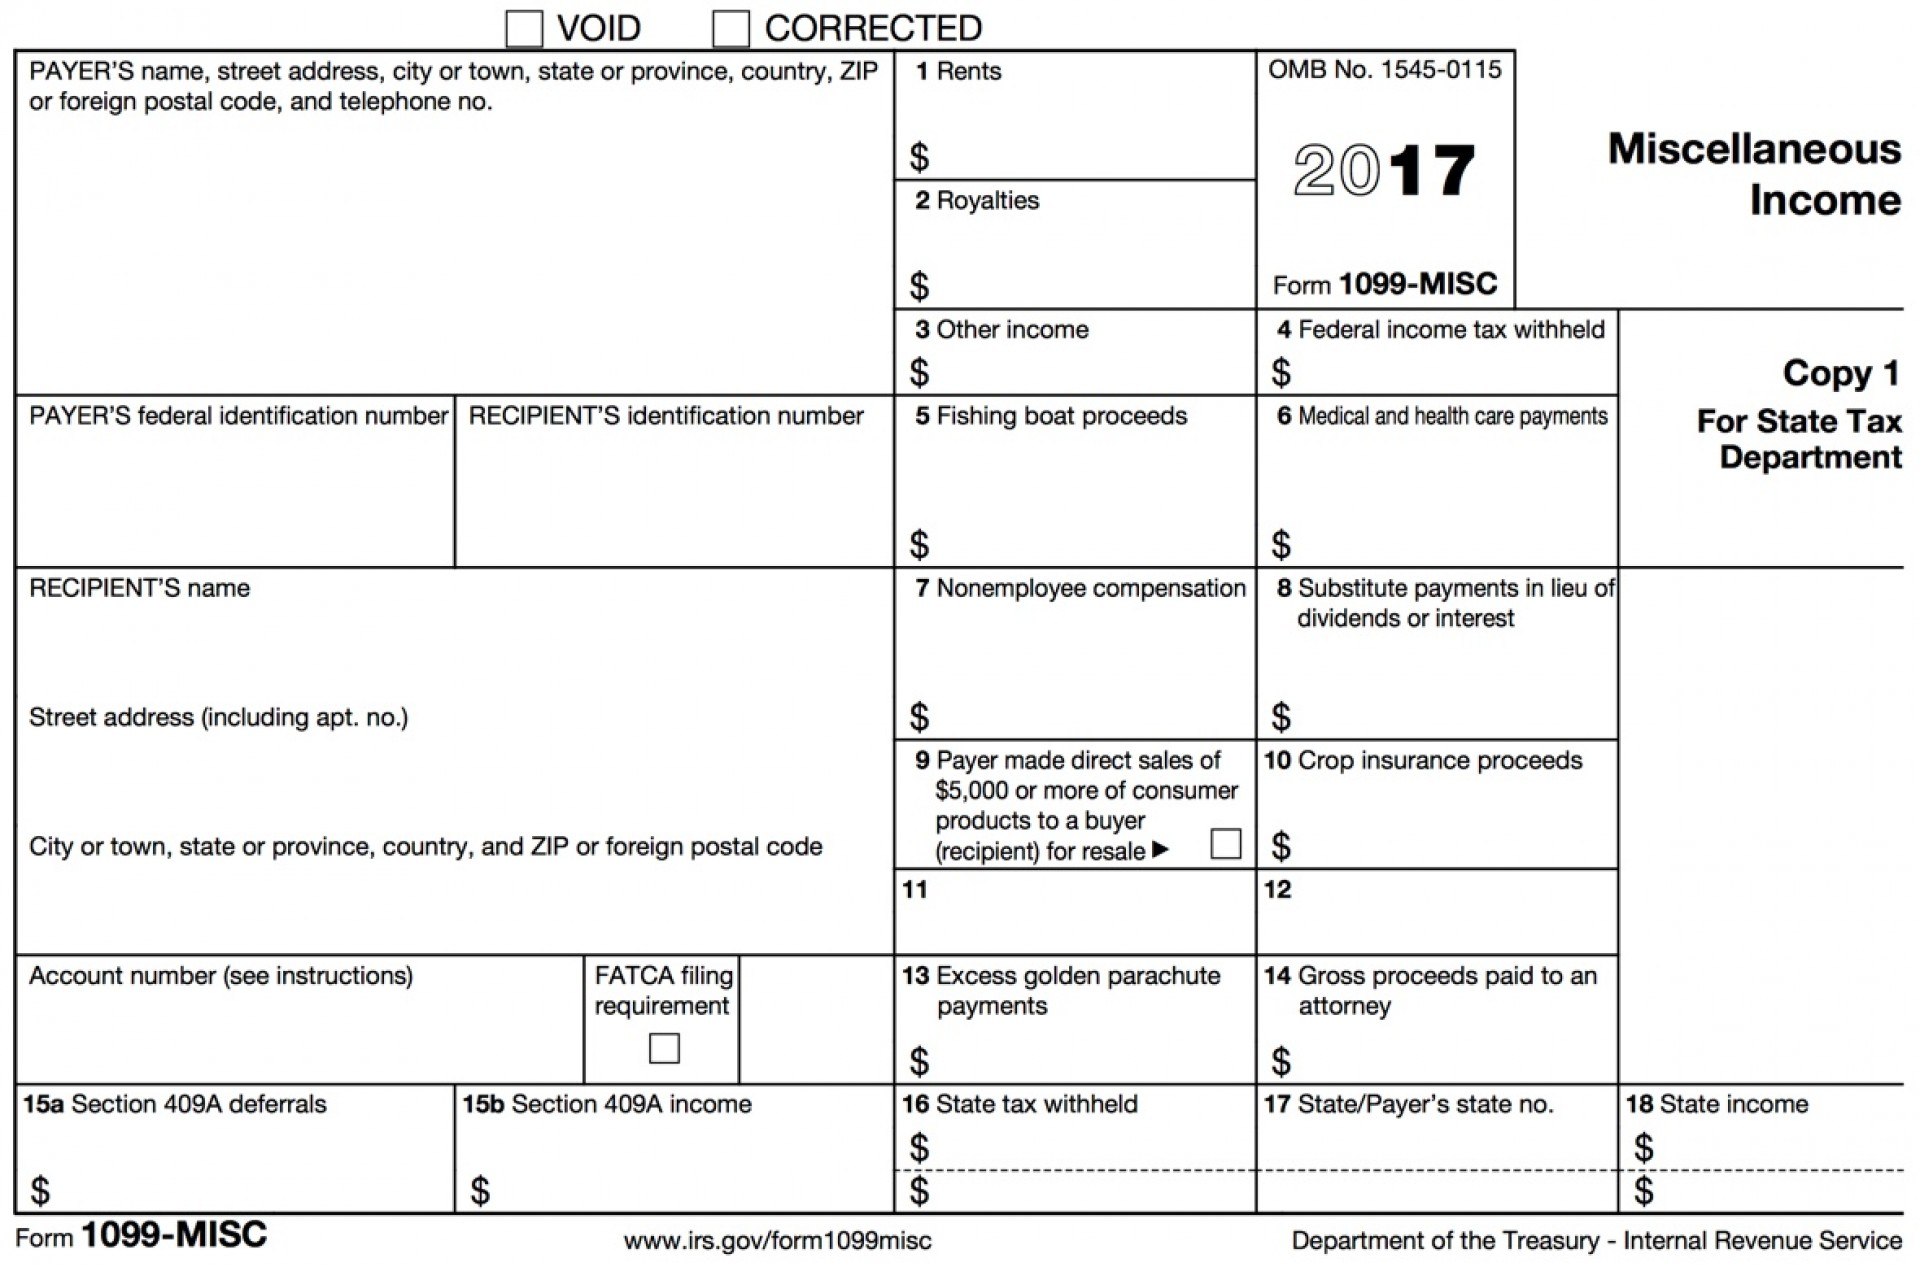 Filing Corrected Form 1099